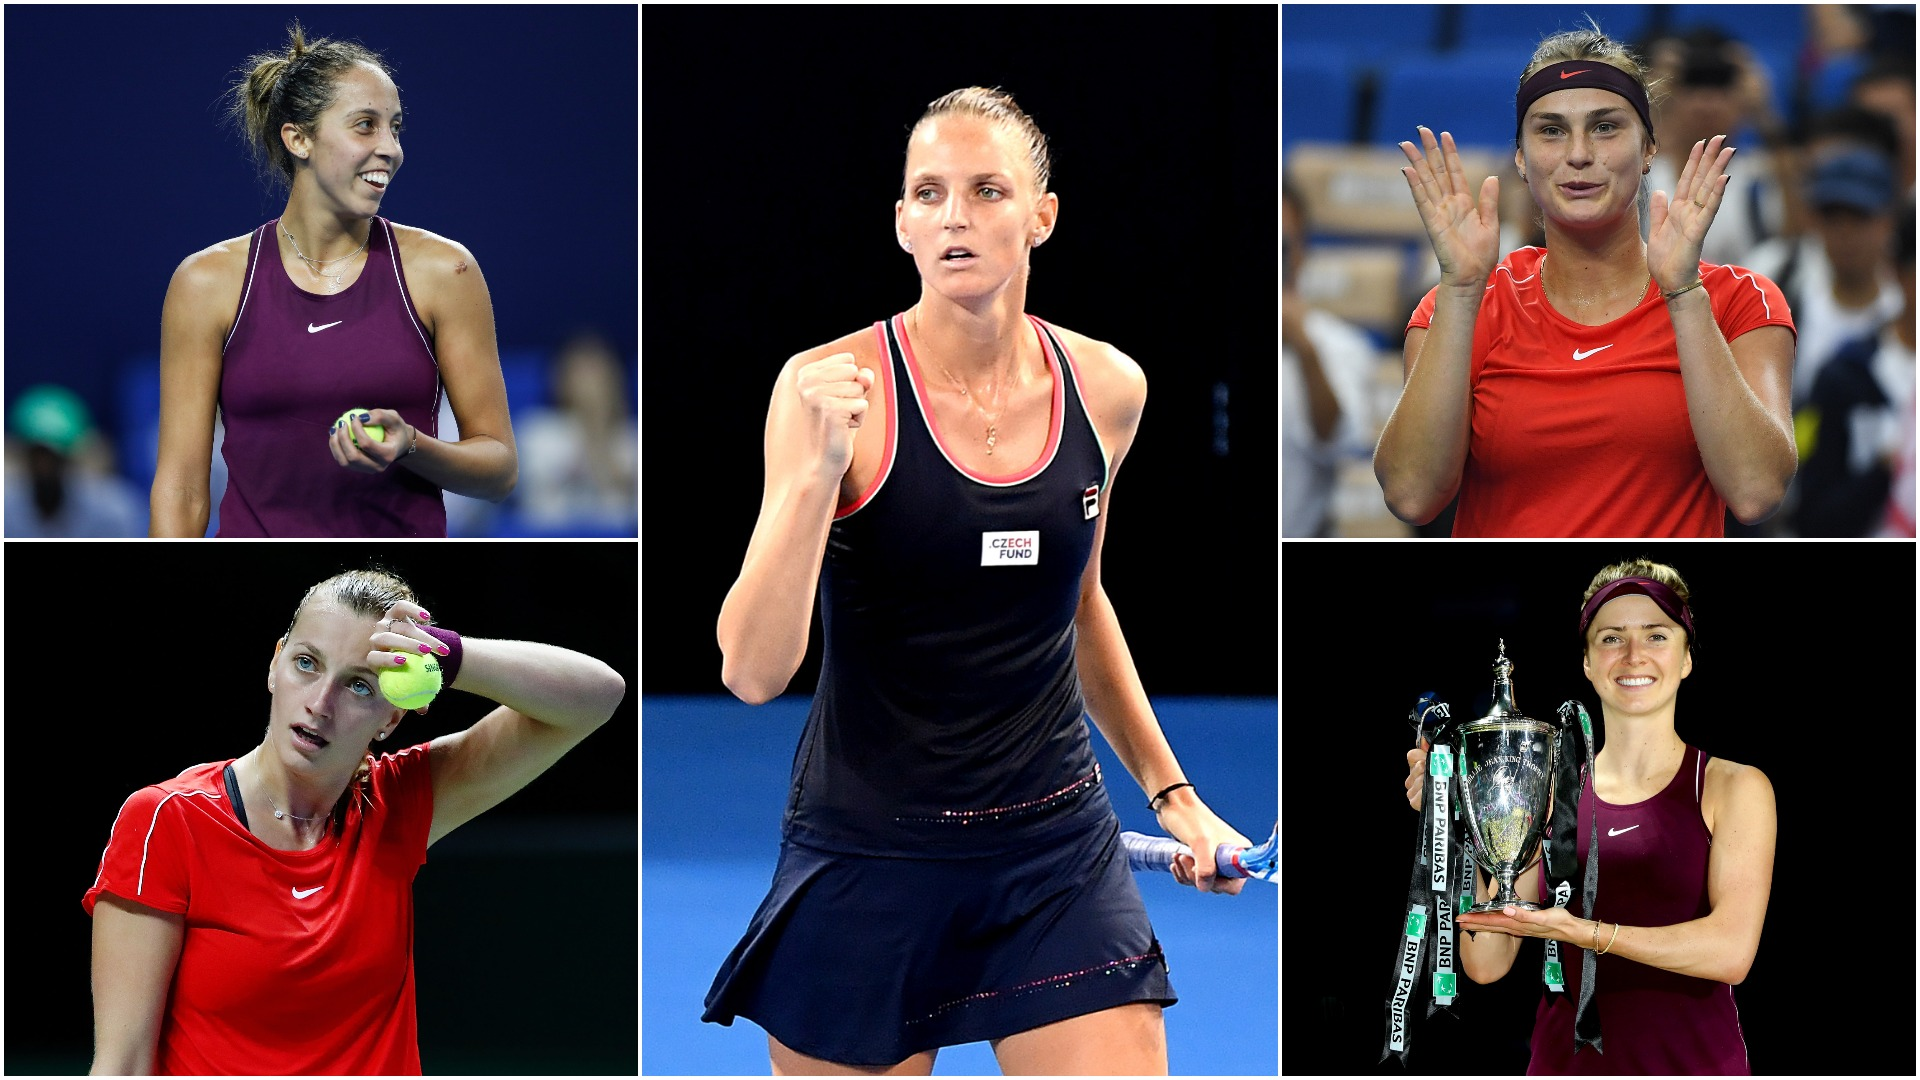 After eight different grand slam winners, we take a look at the WTA stars who could extend that run at the Australian Open.